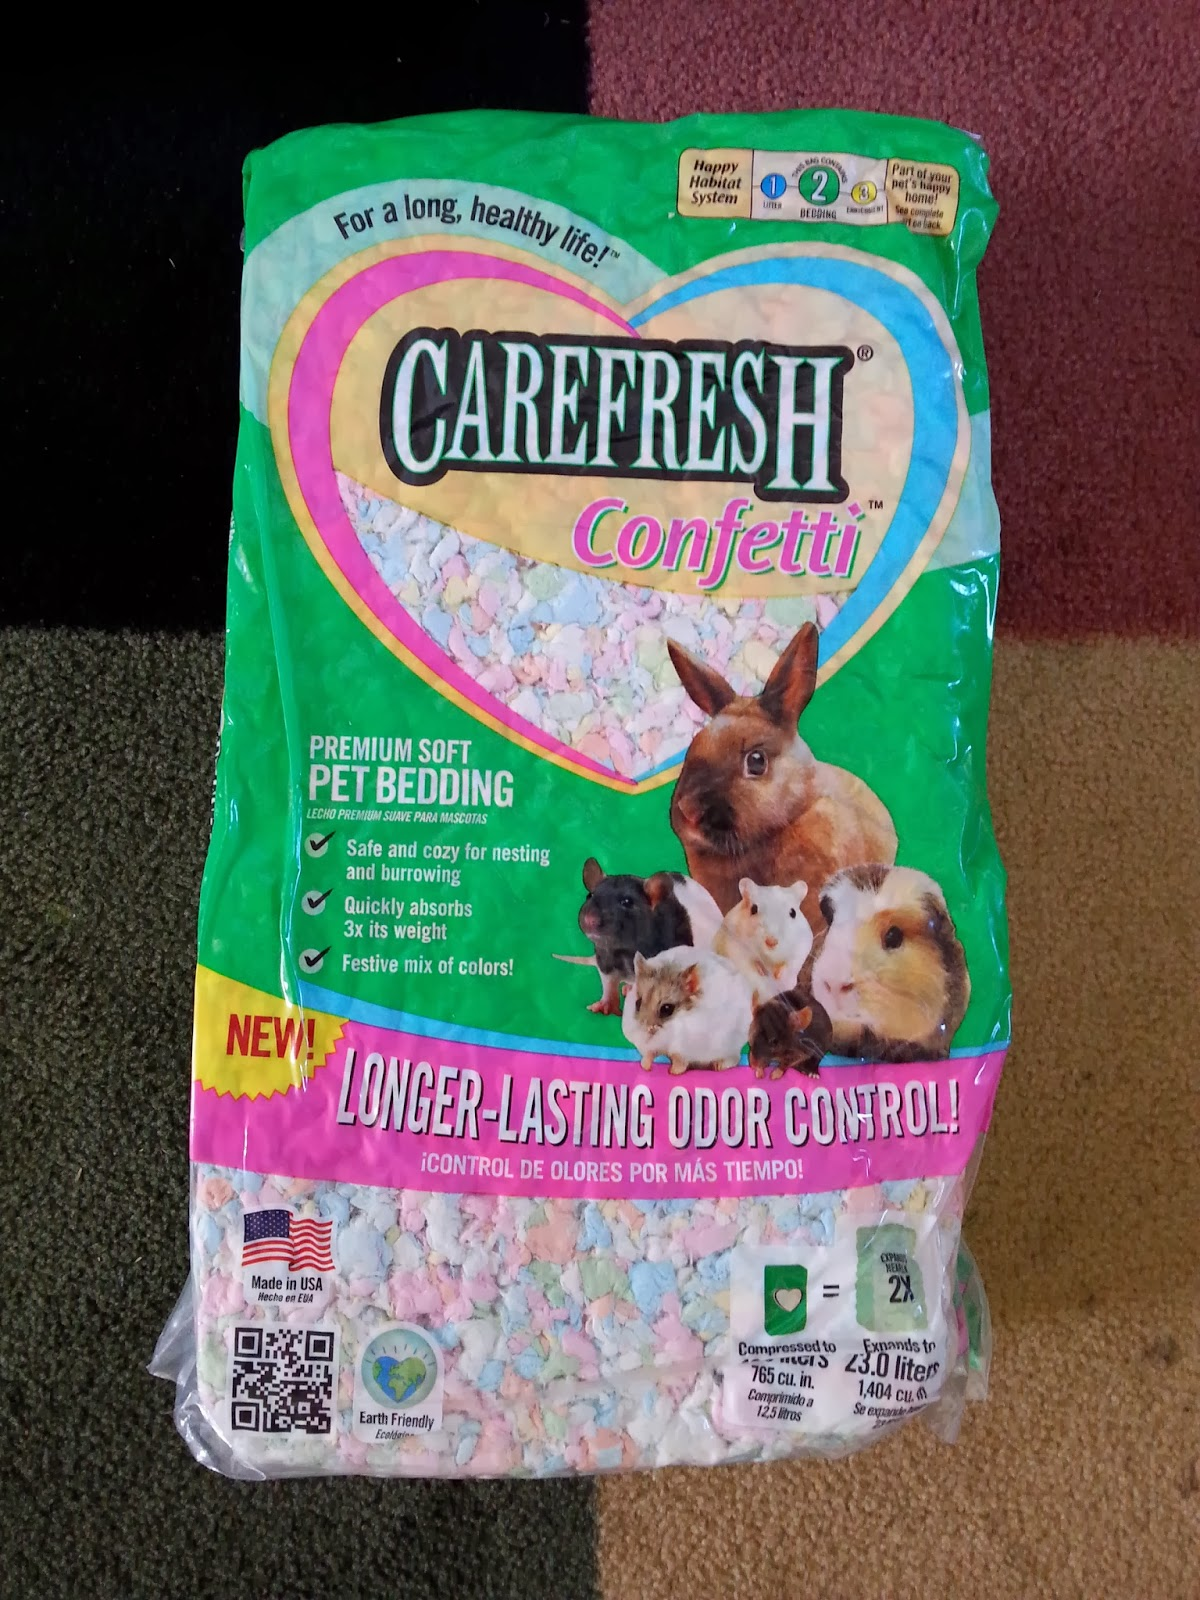 Cavy Savvy A Guinea Pig Blog Product Review Carefresh Confetti